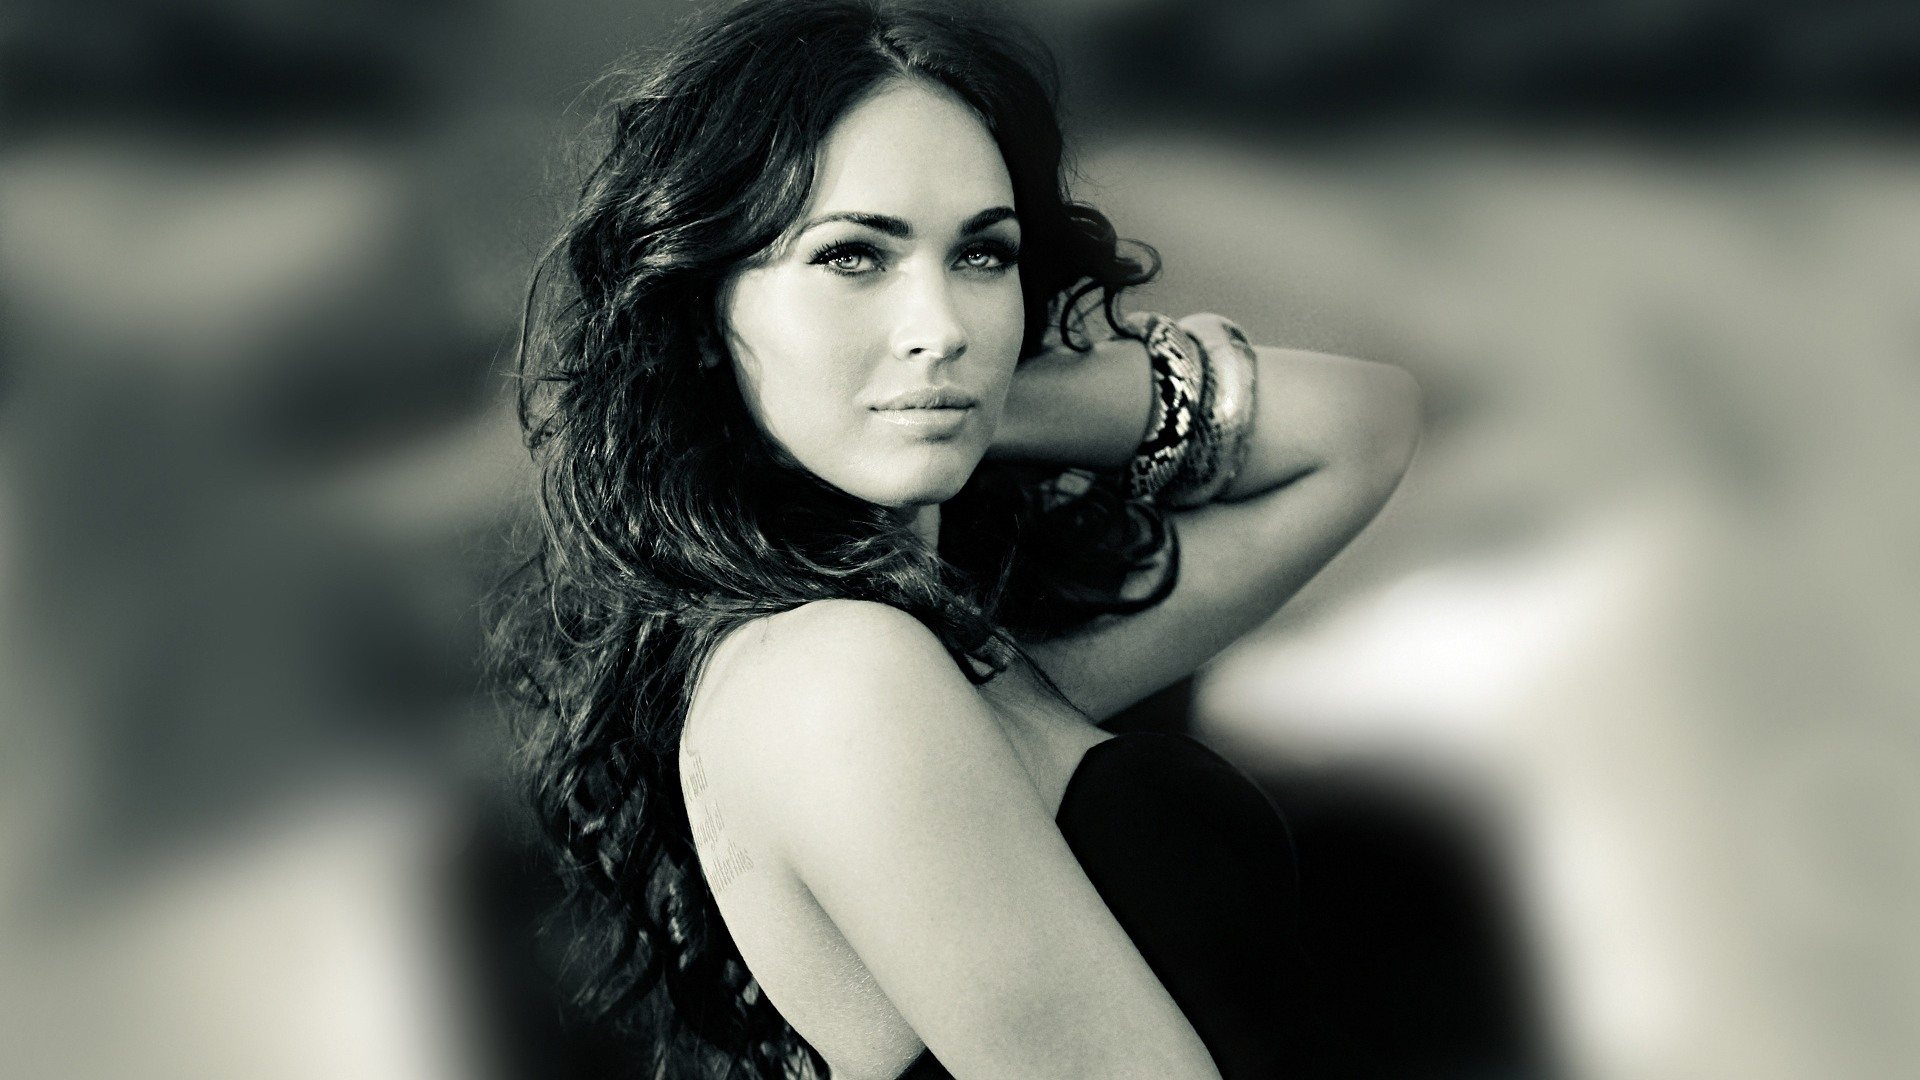 Megan Fox Wallpapers High Resolution and Quality Download 1920x1080